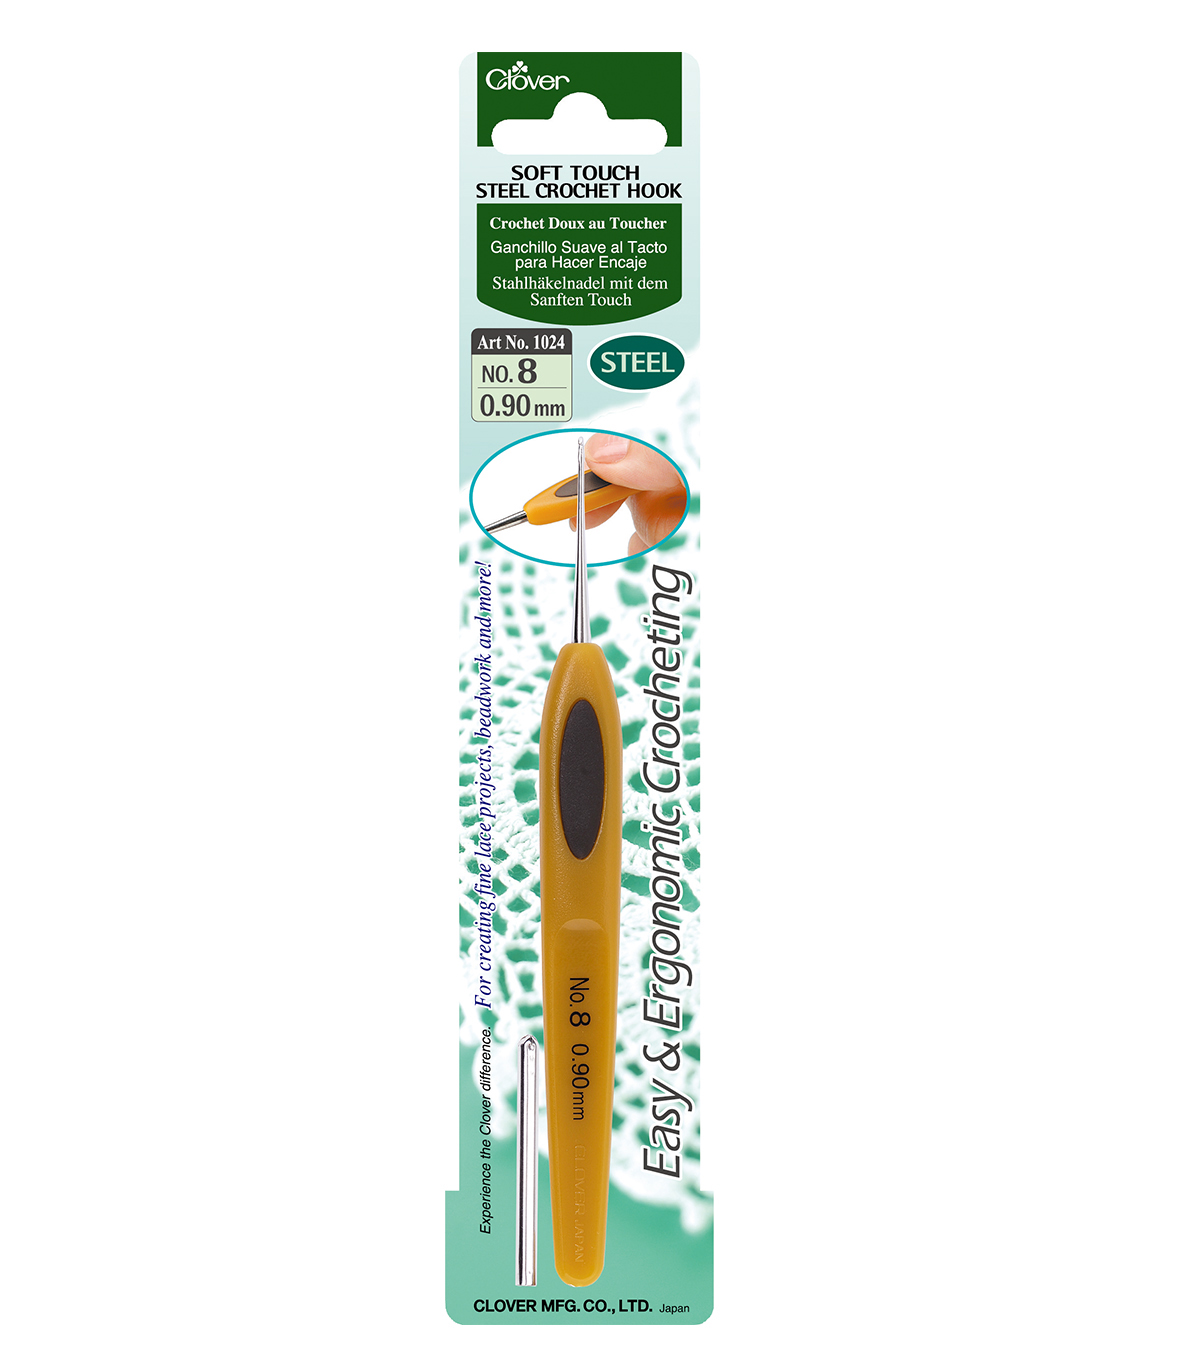 Clover-Soft Touch Steel Crochet Hook-Size 8 .90mm